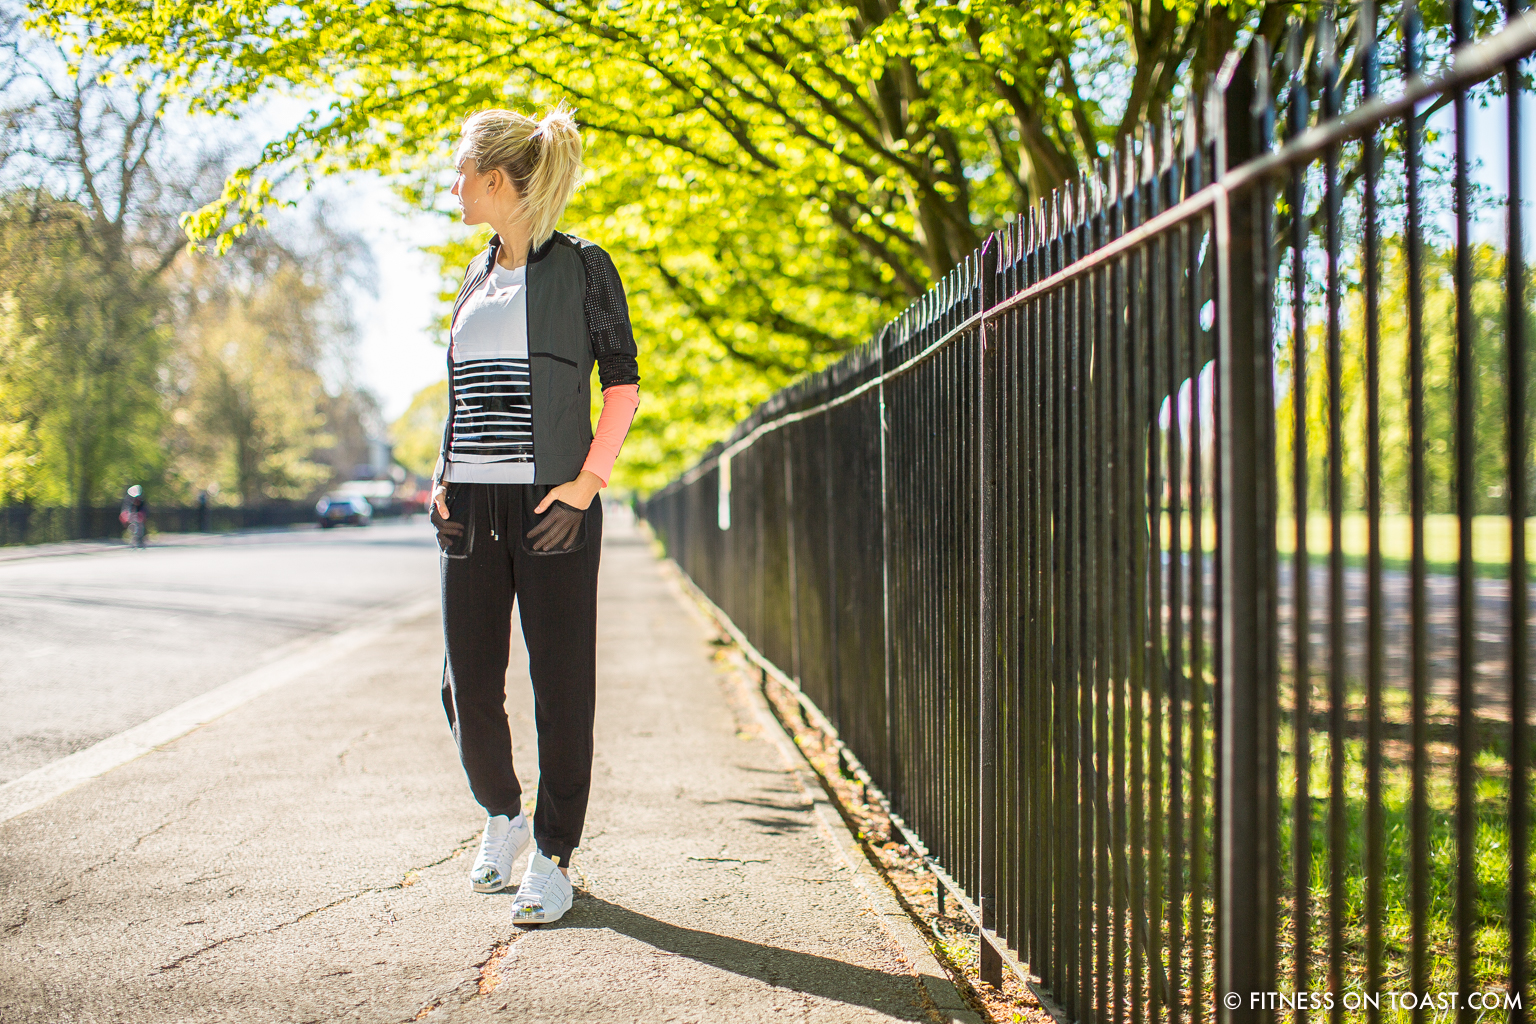 Faya Nilsson of Fitness On Toast in collaboration with Selfridges for 'The Body Studio'; Wearing Monreal top and slouchy bottoms, with Adidas shoes and t-shirt by the running track in Regent's Park in London